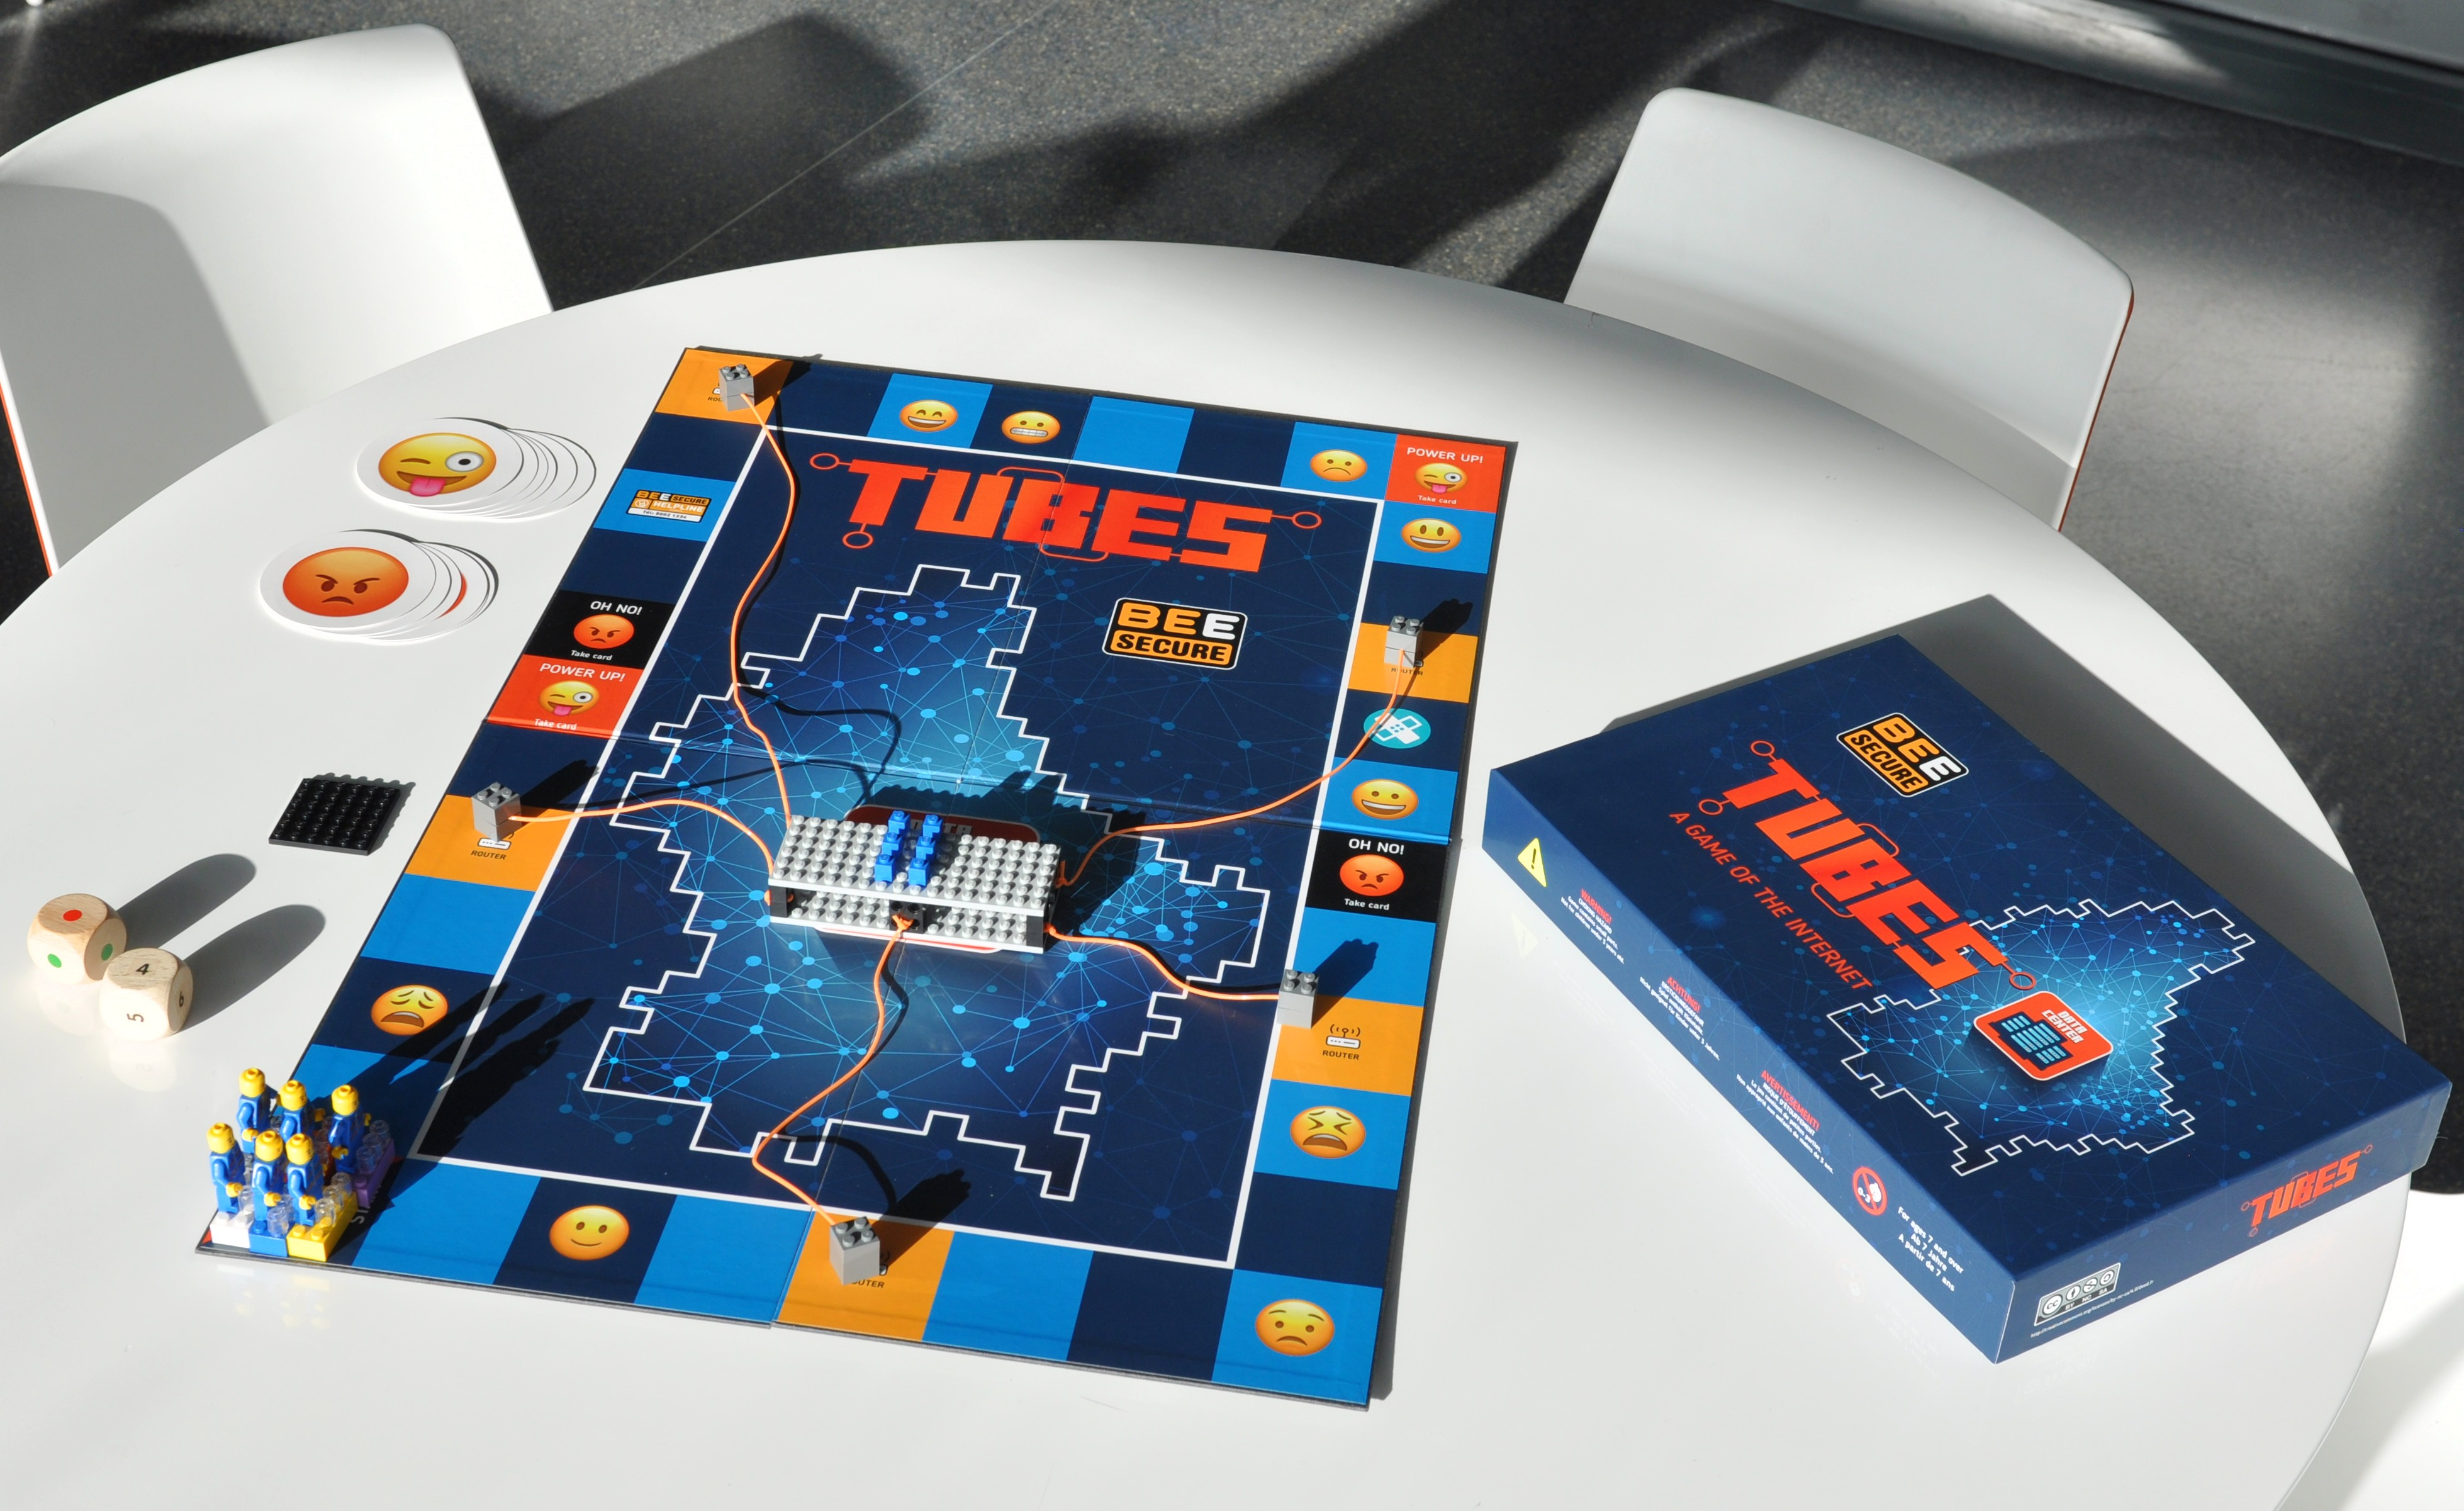 TUBES – A Game Of The Internet released Feb 6th